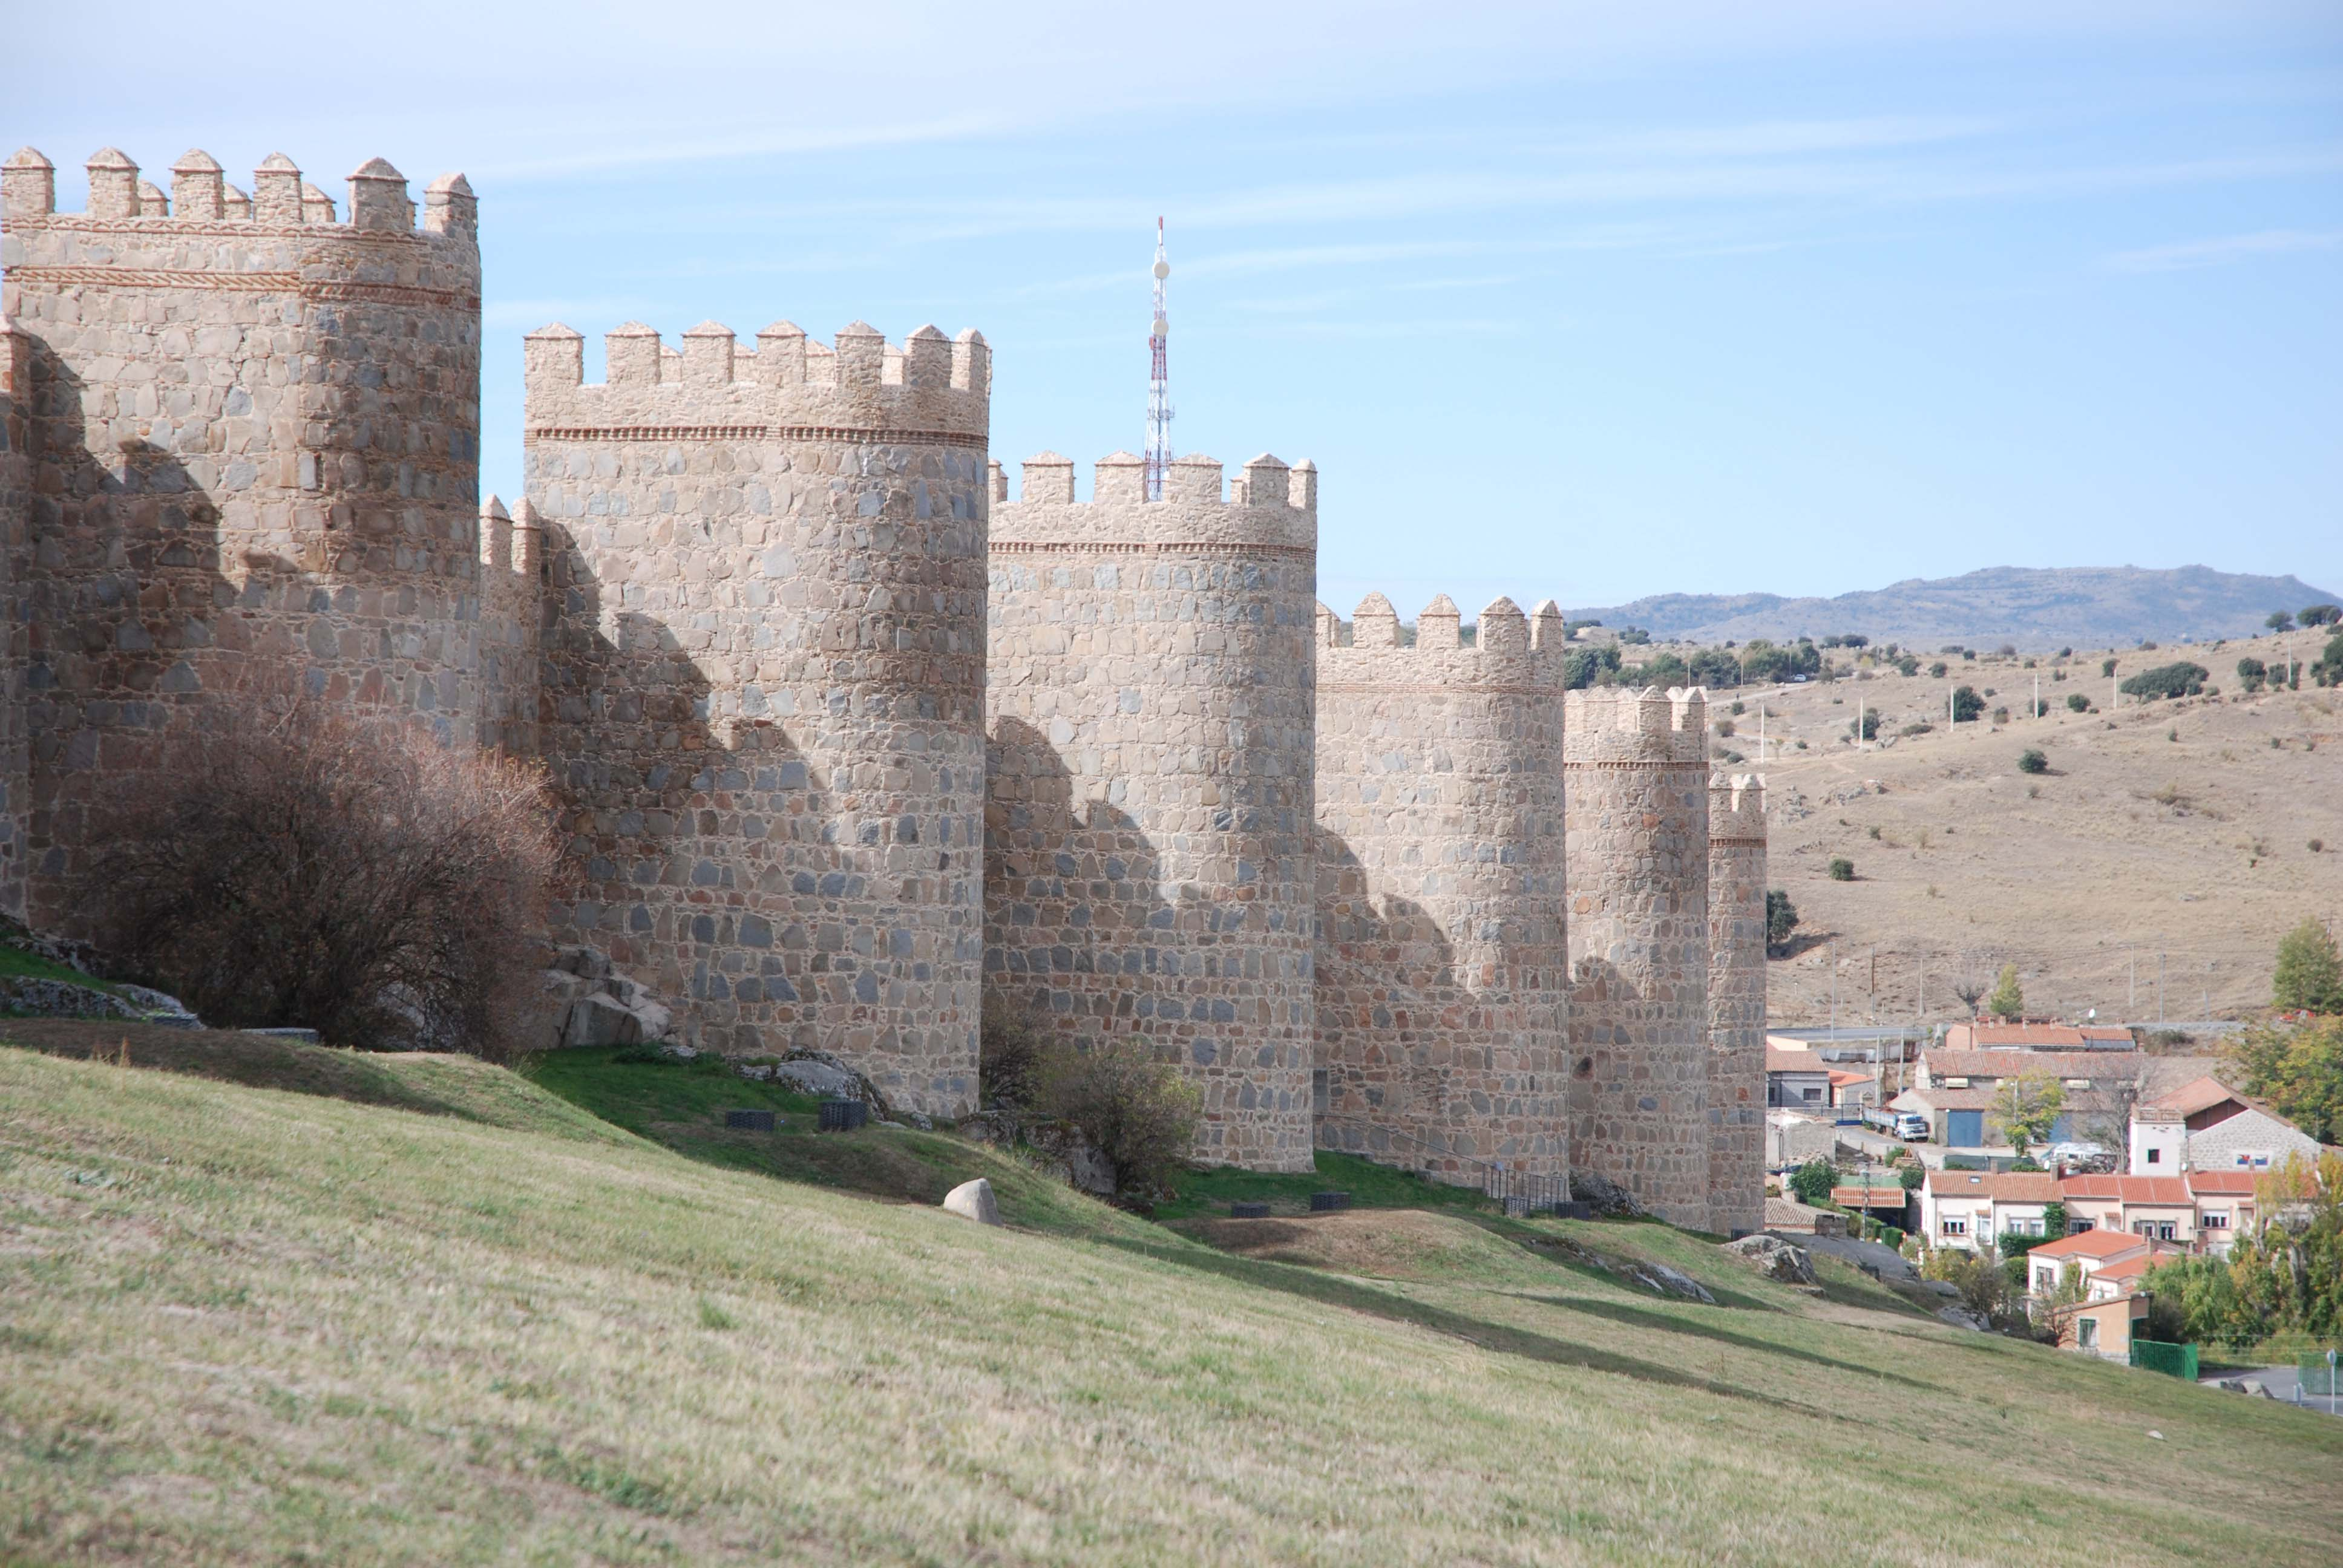 Avila walls, the longest in Spain